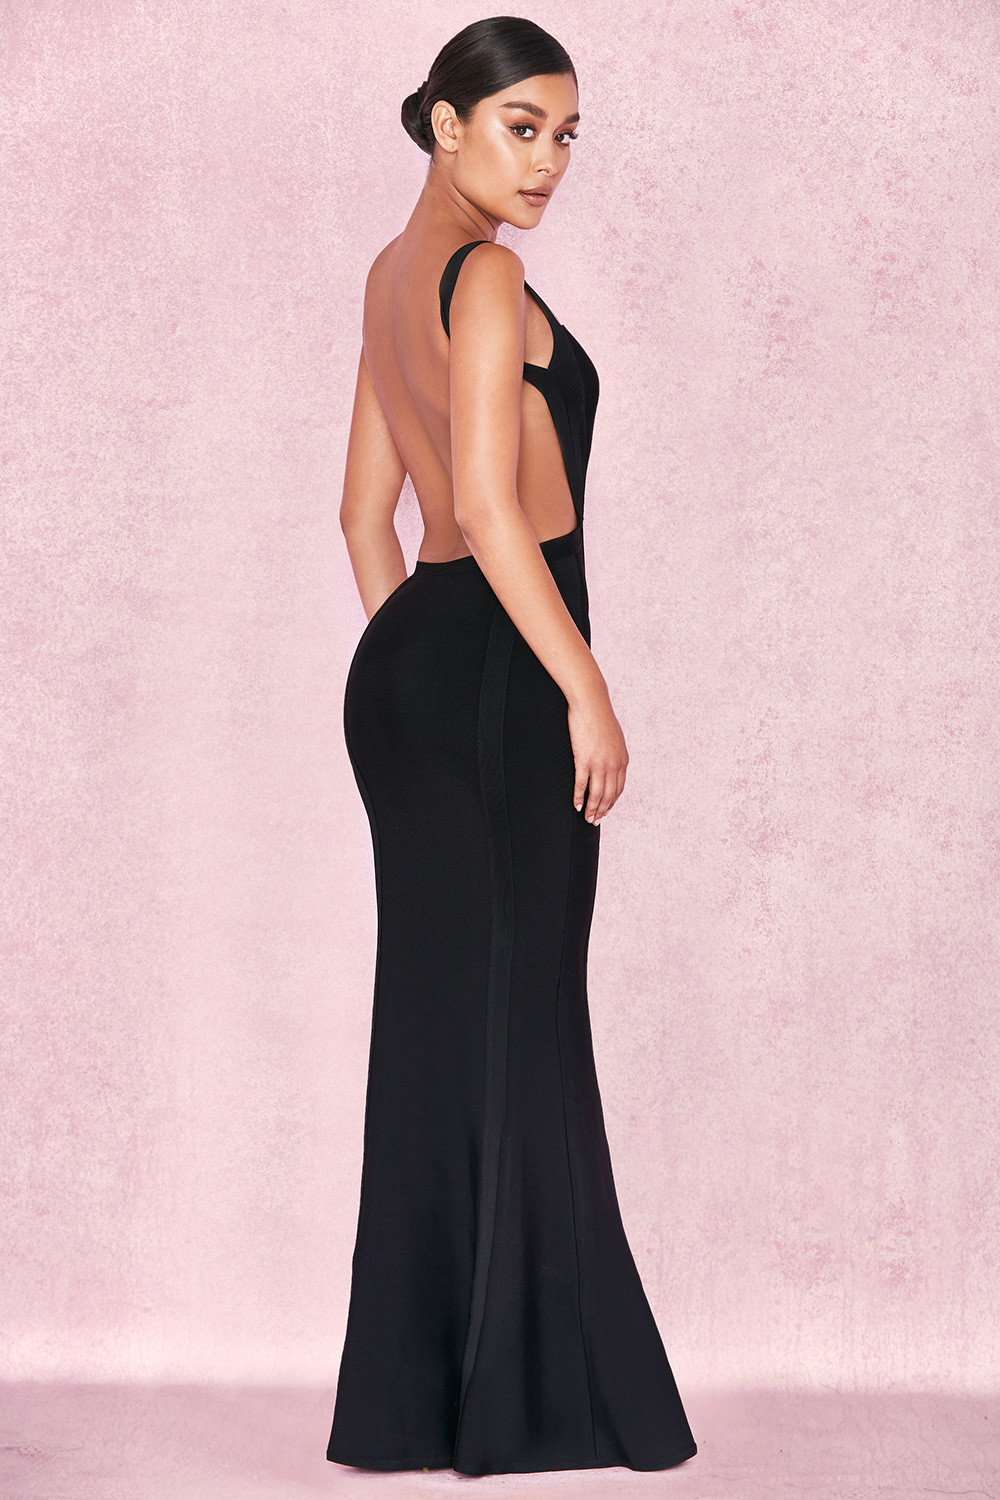 Clothing  Max Dresses  Ophelia Black Backless Maxi Bandage Dress